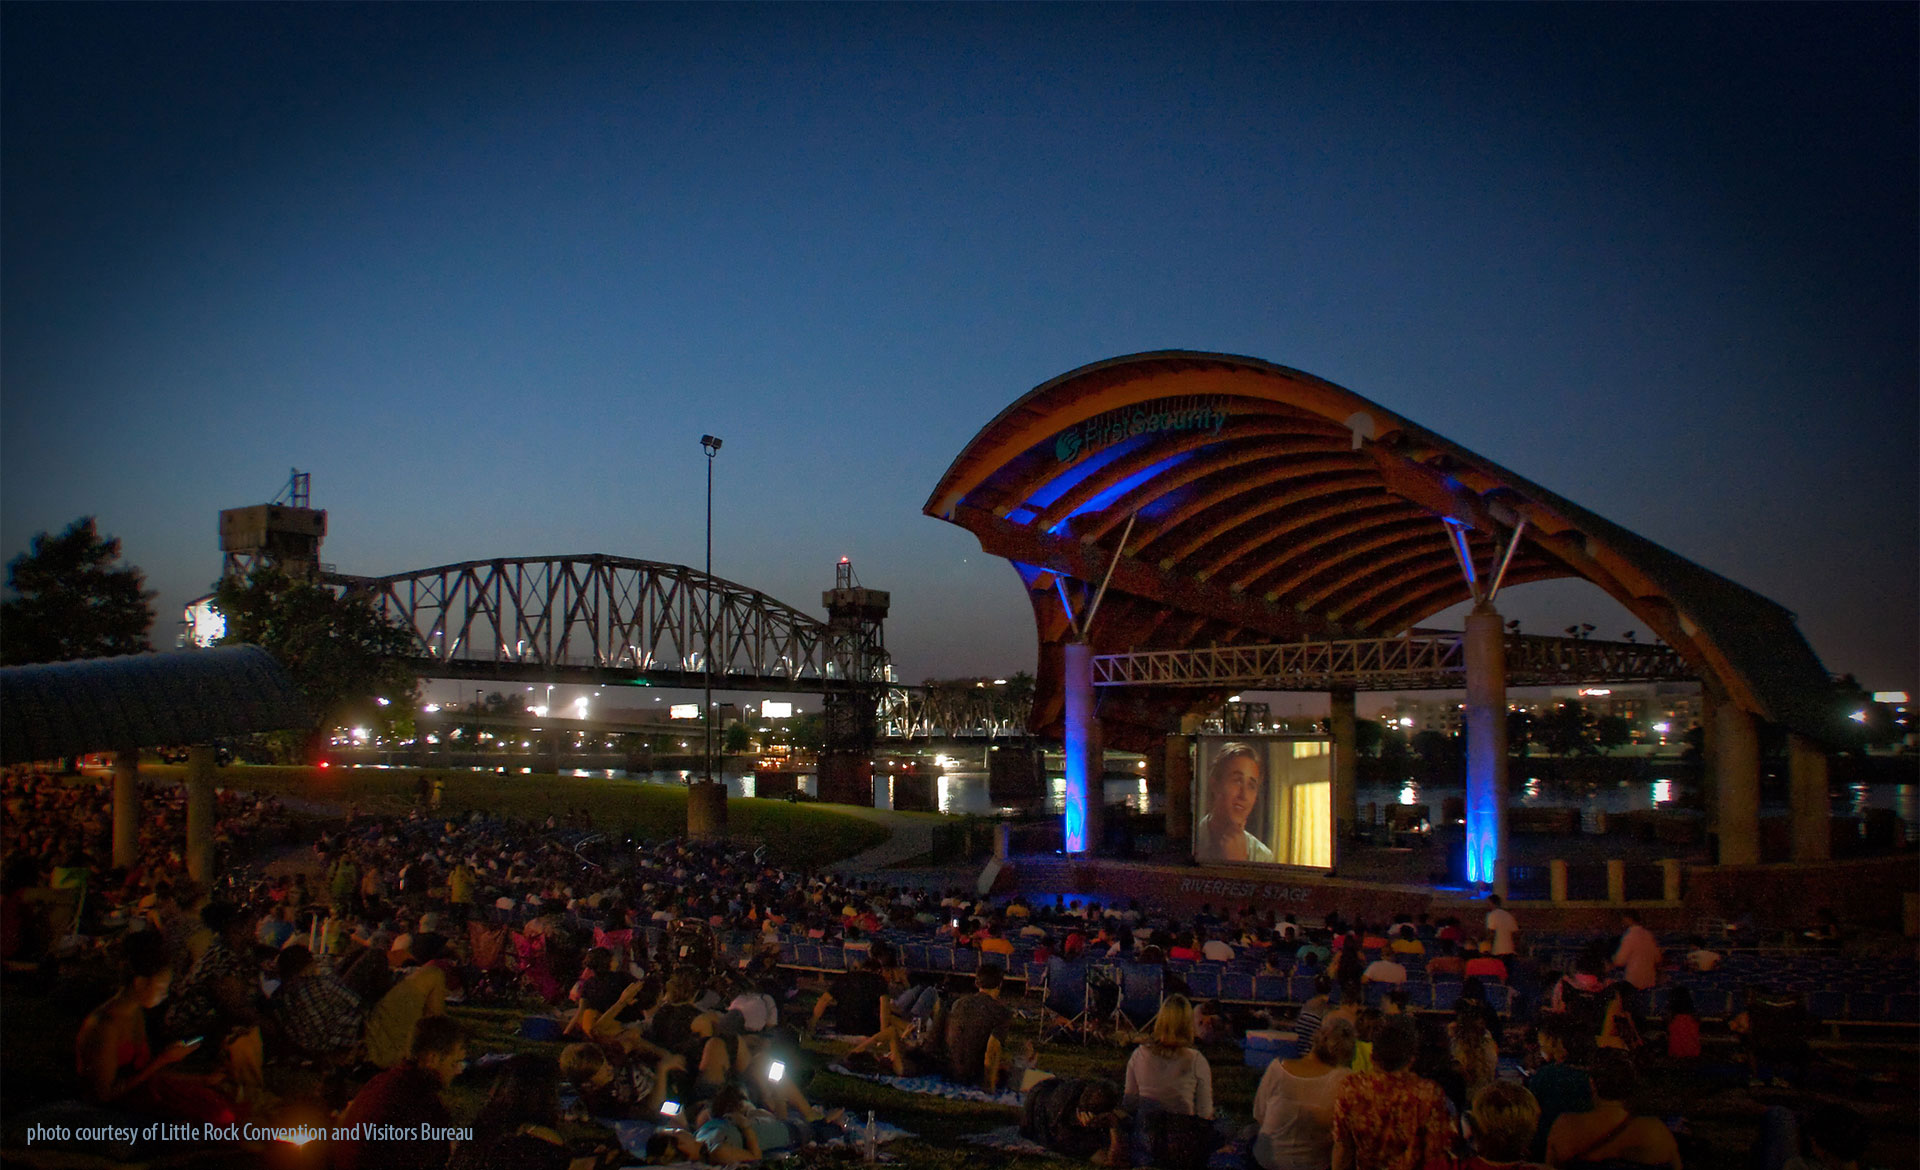 free movies in the park at First Security Amphitheater, Little Rock